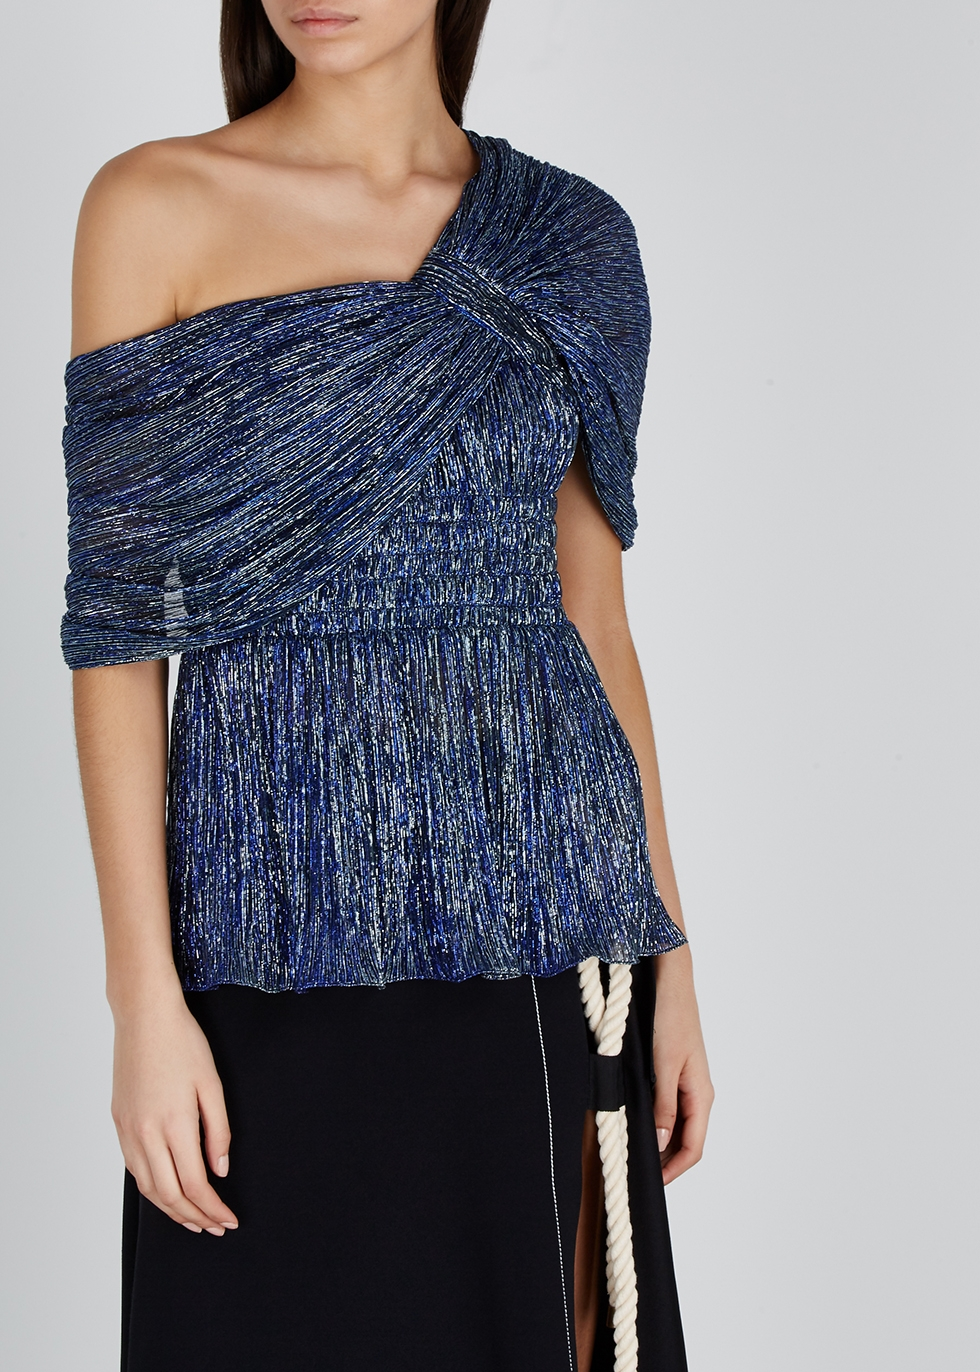 Navy one-shoulder lamé top - Peter Pilotto